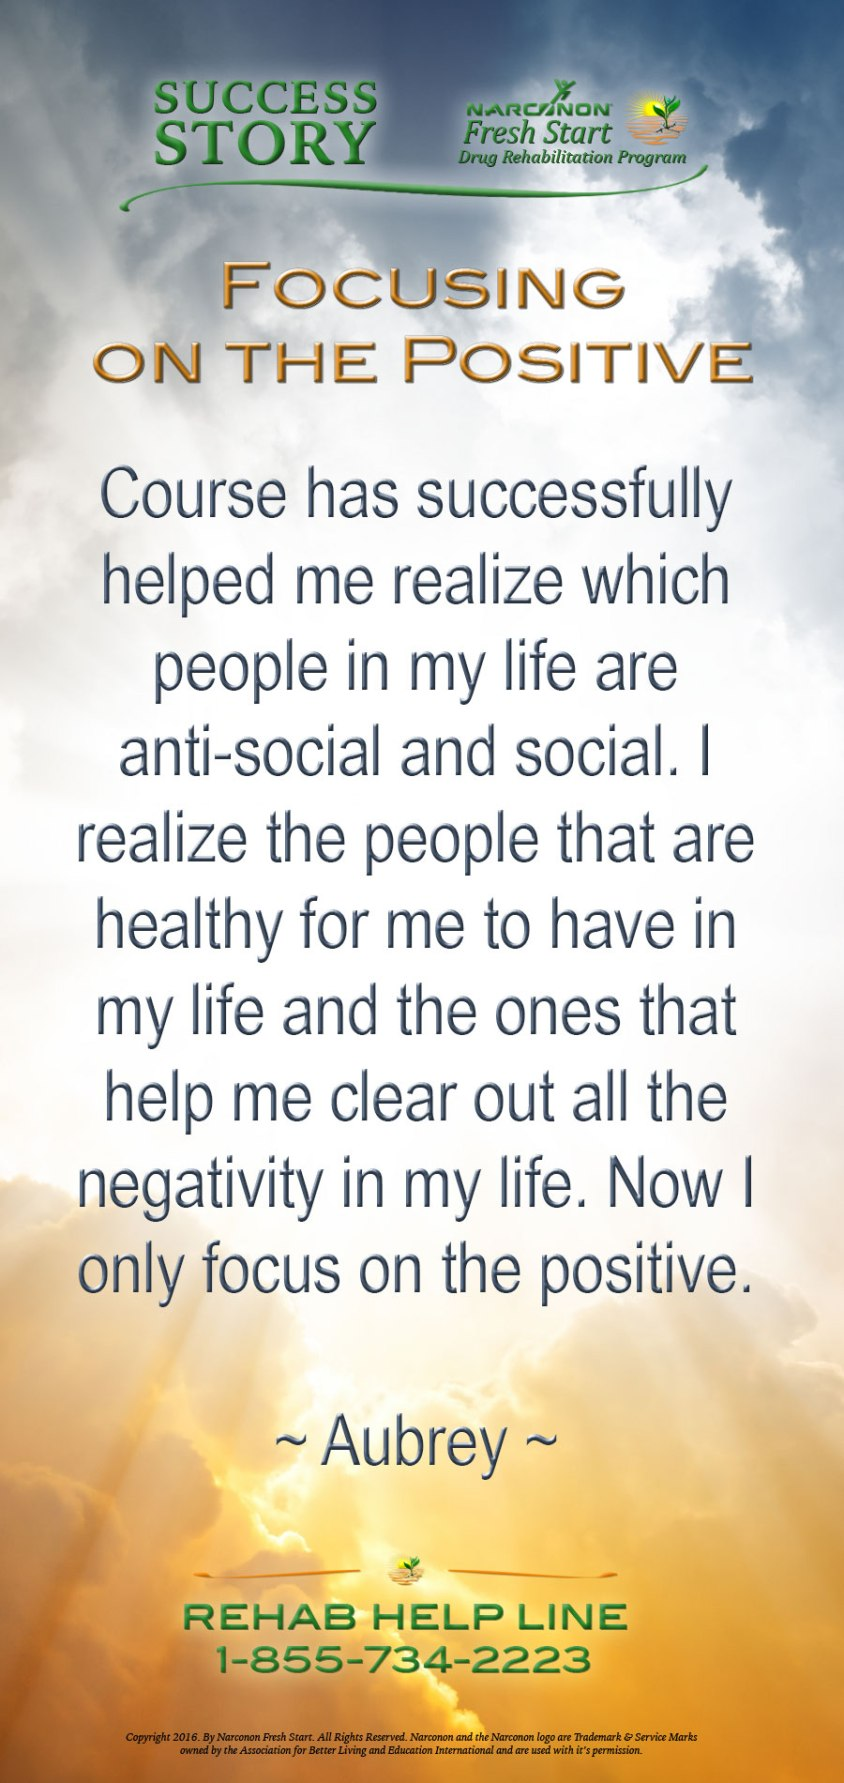 Focusing on the Positive